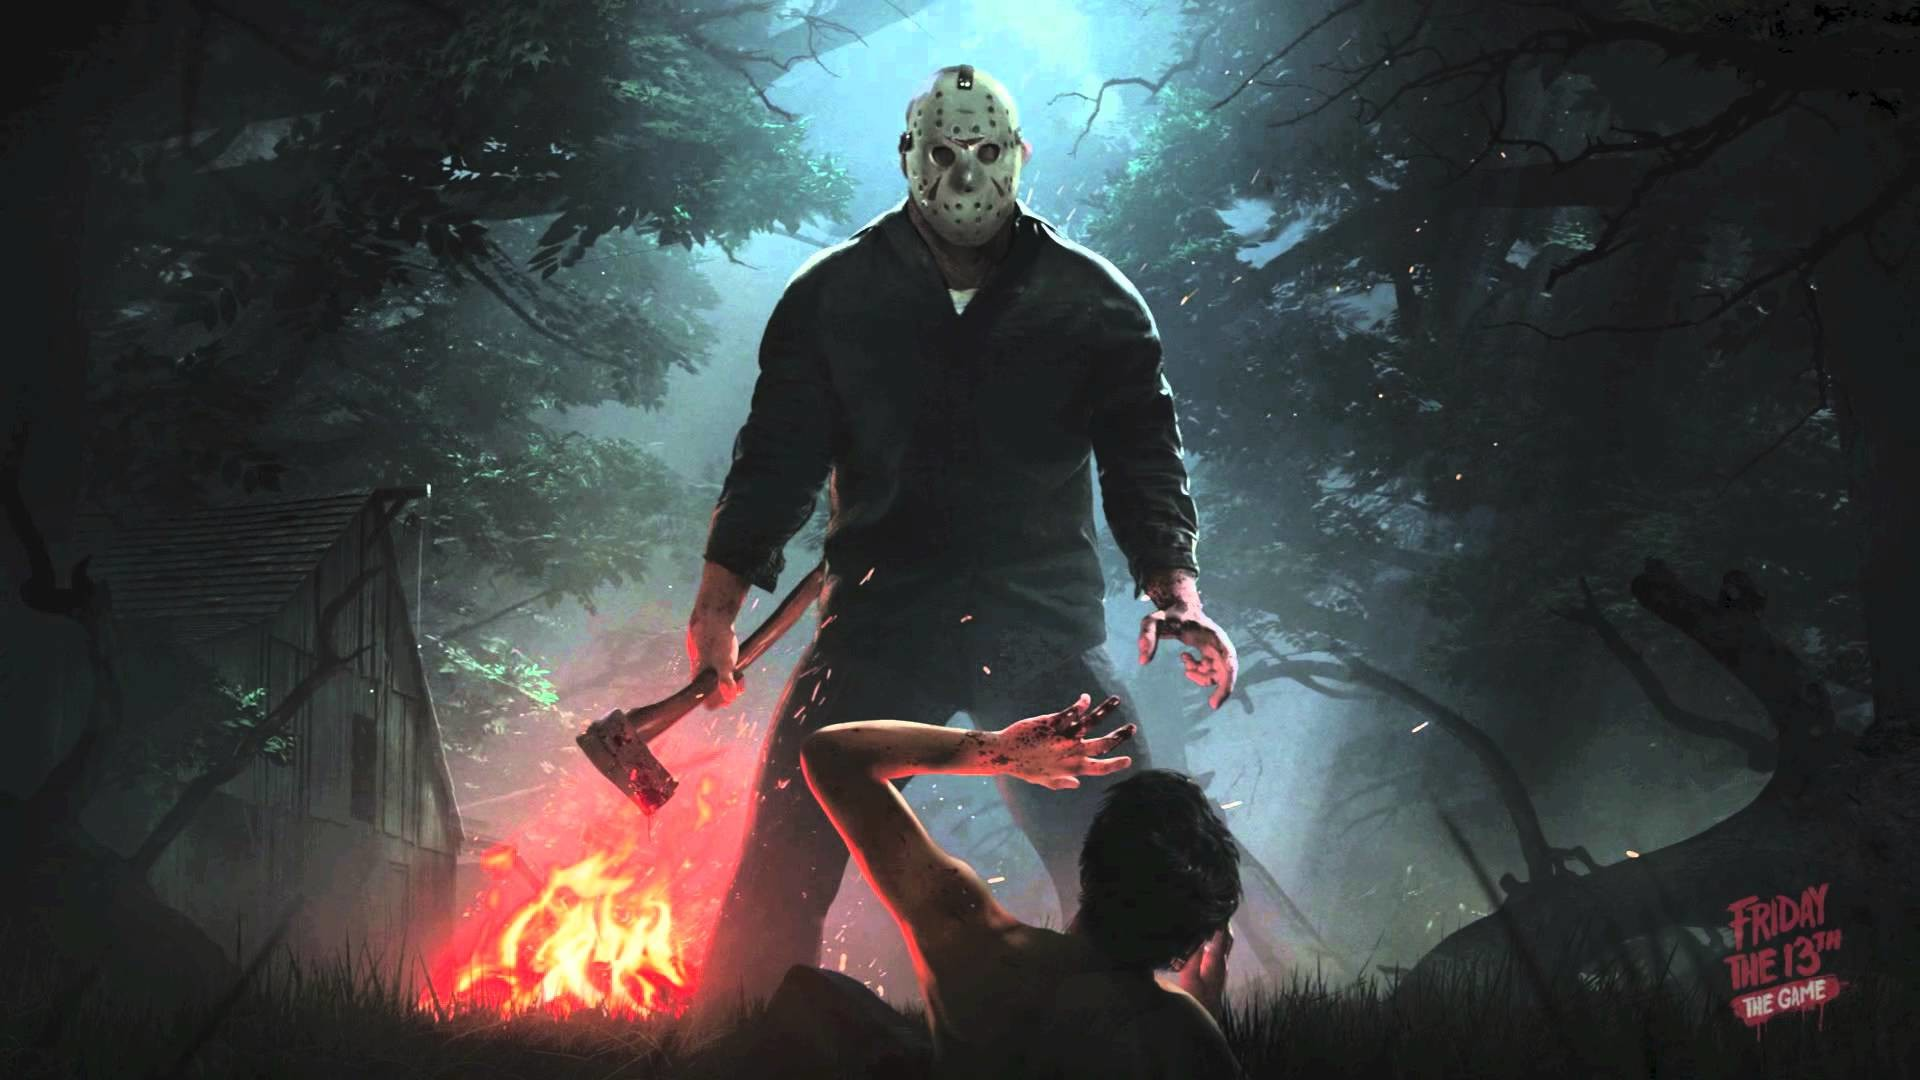 Friday the 13th The Game. Jason's coming!